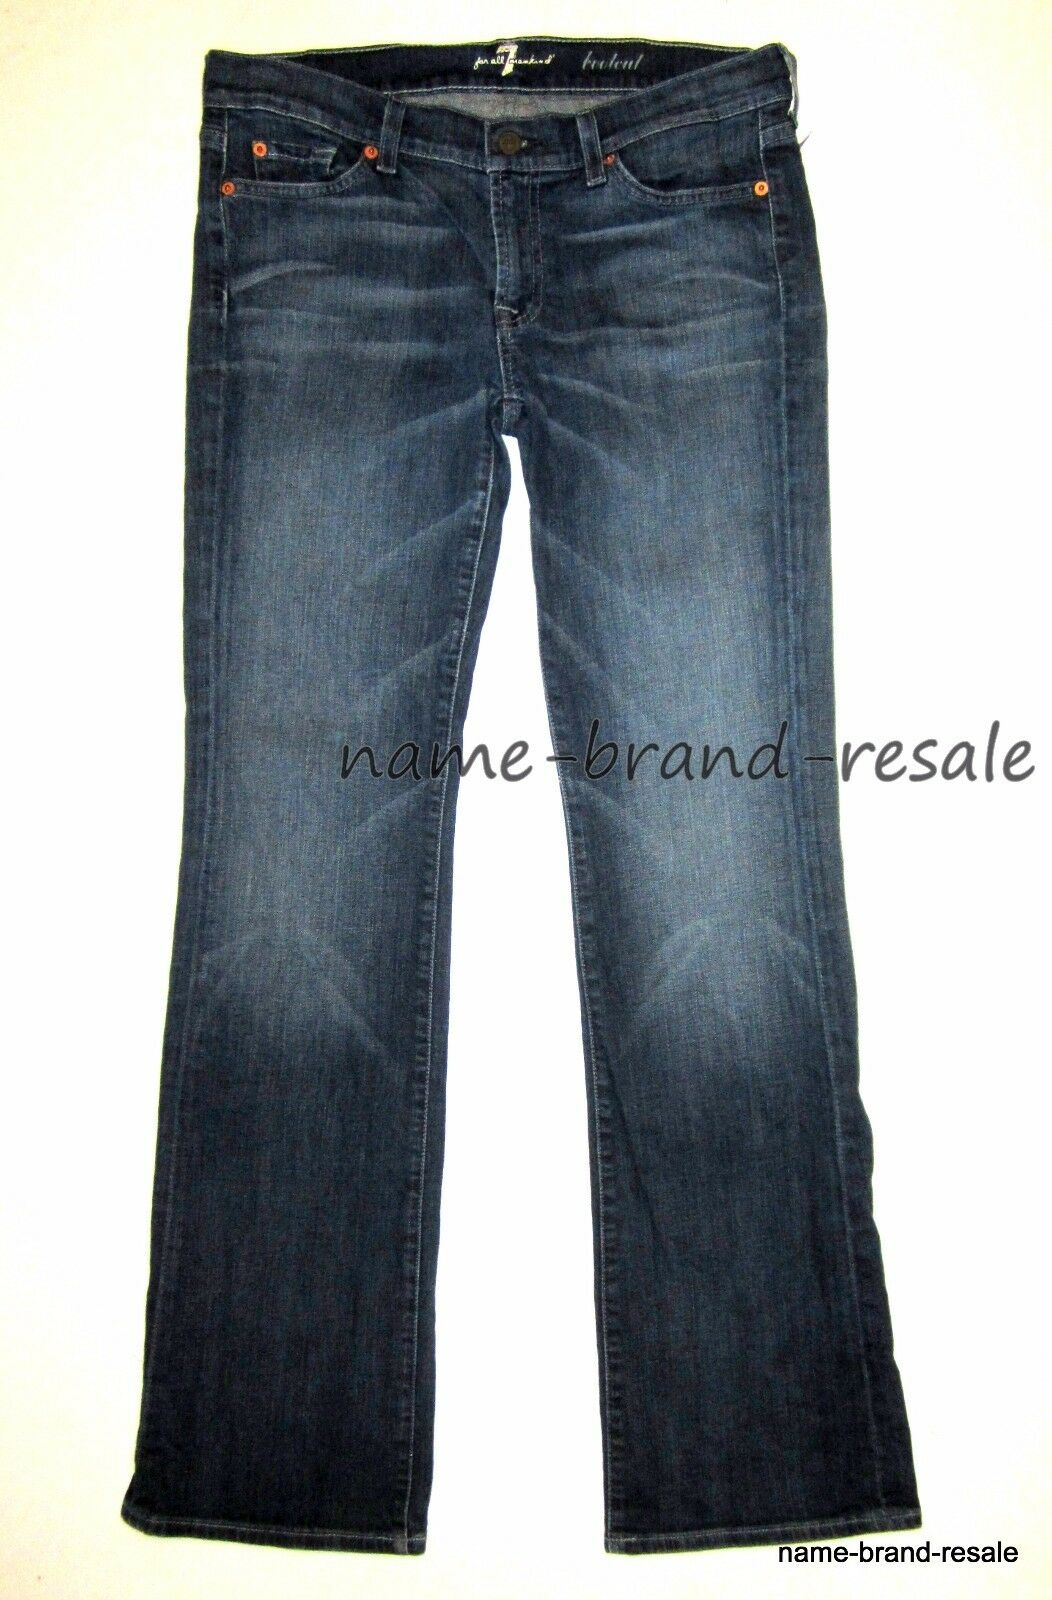 7 FOR ALL MANKIND Womens 30 x 33 Jeans BOOTCUT Designer Denim Boot Cut